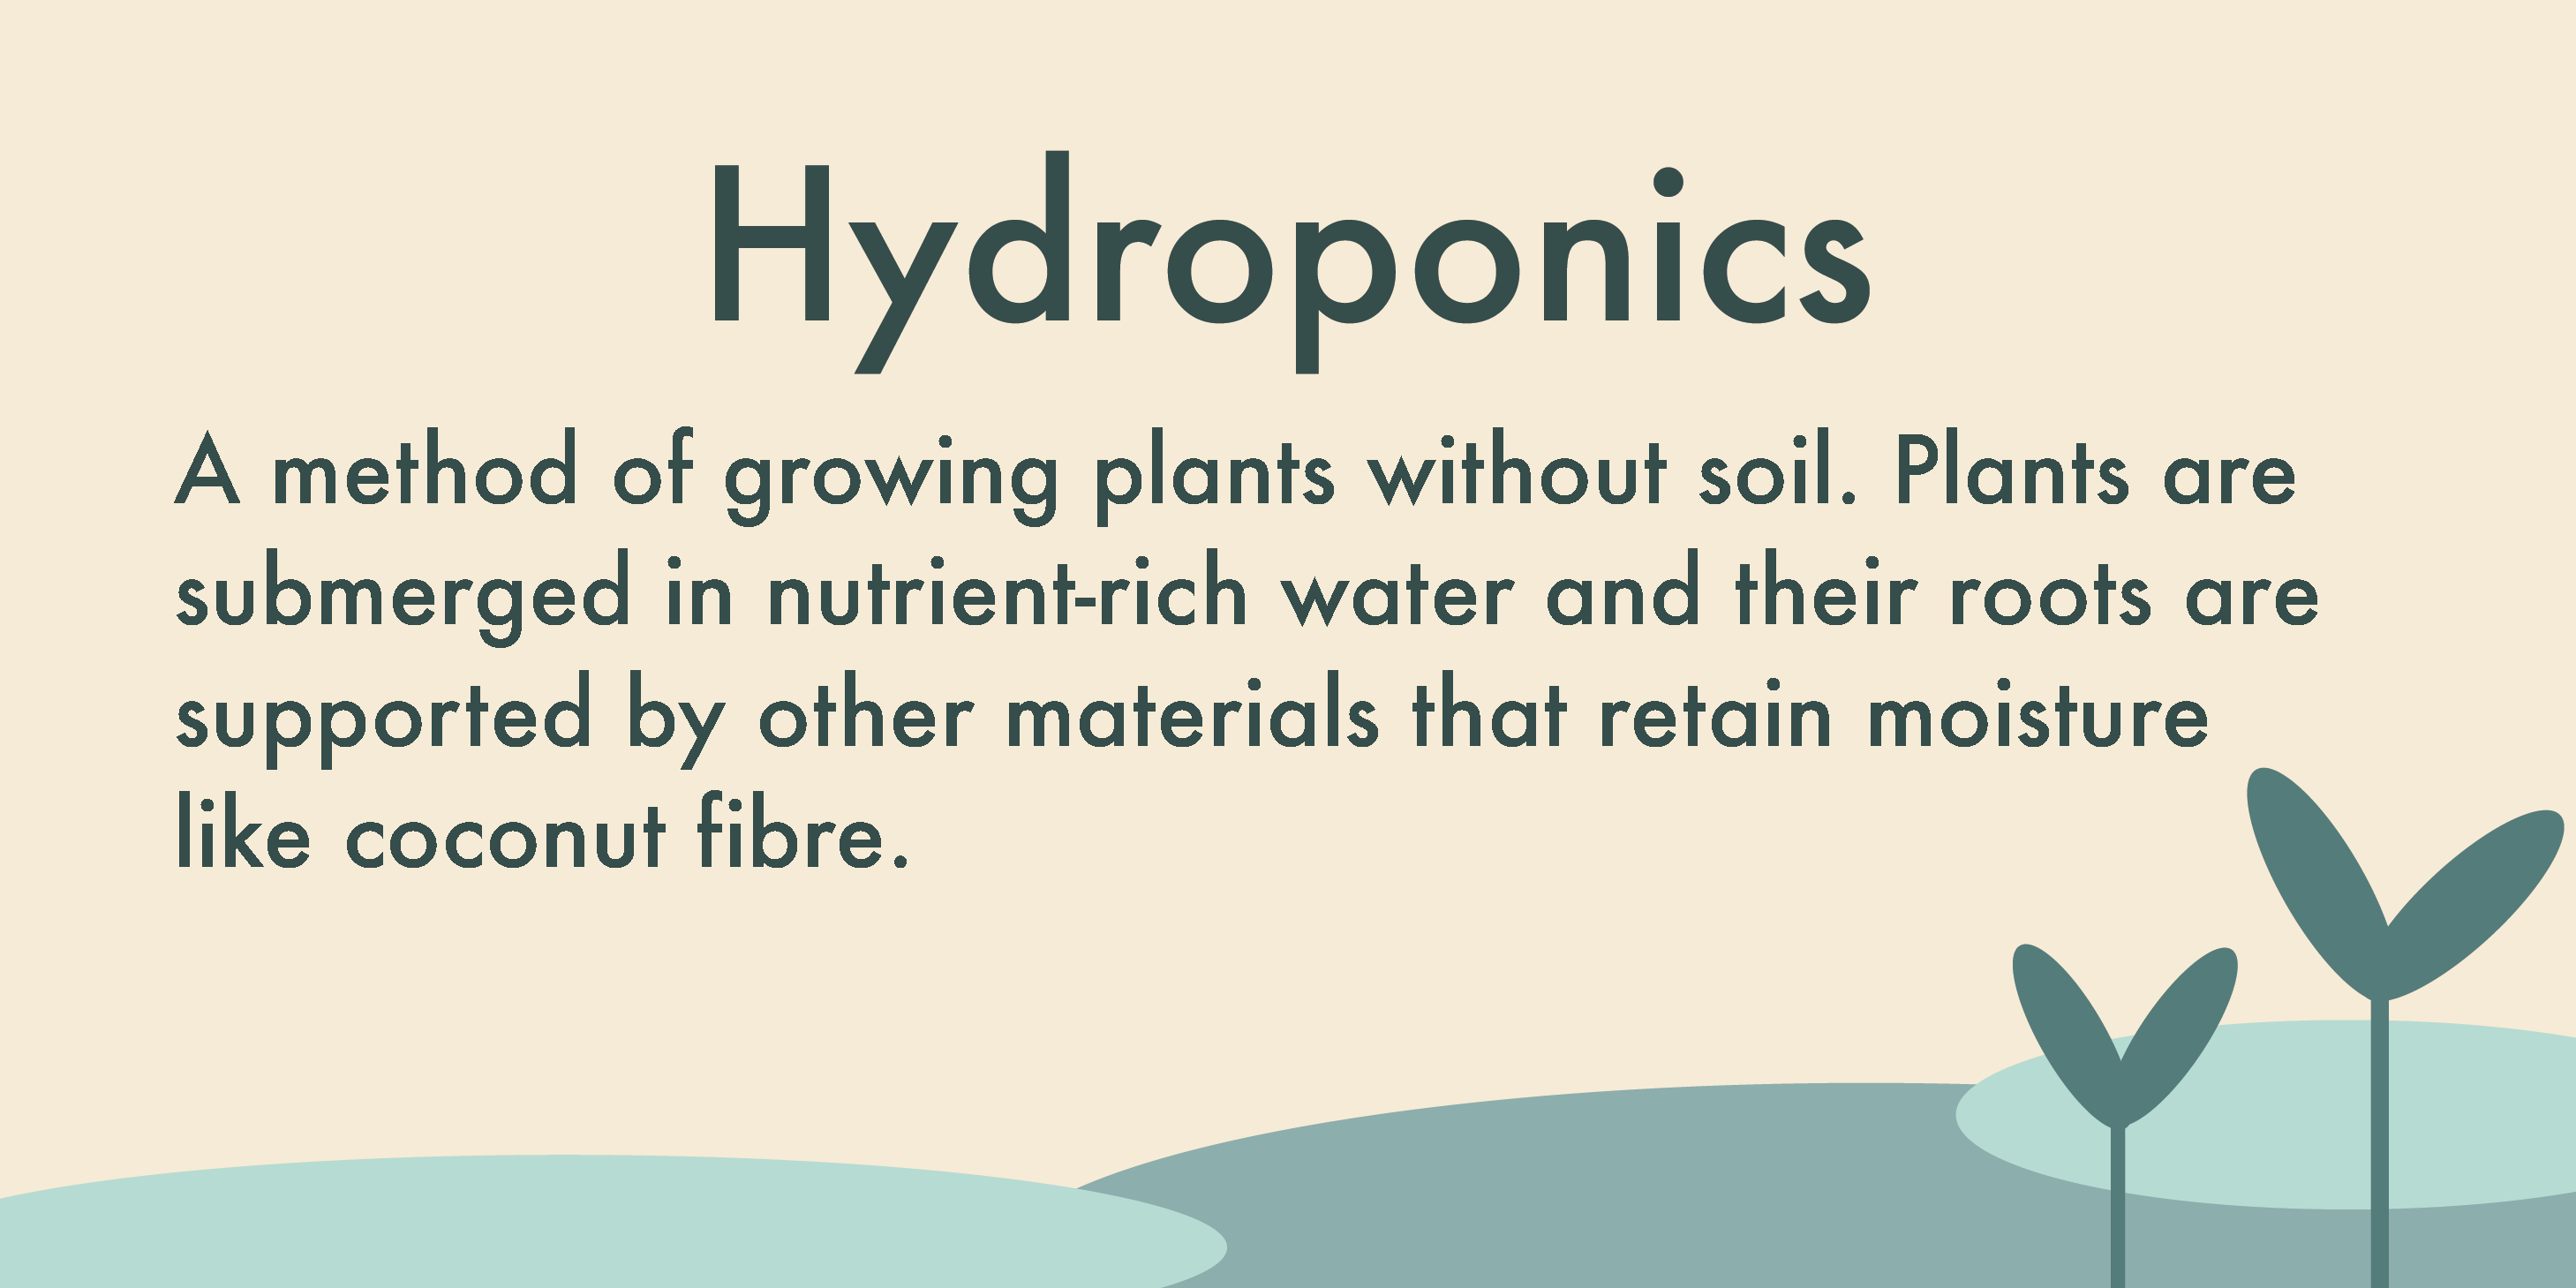 Hydroponics are a method of growing plants without soil. Plants are submerged in nutrient-rich water and their roots are supported by other materials that retain moisture, like coconut fibre.